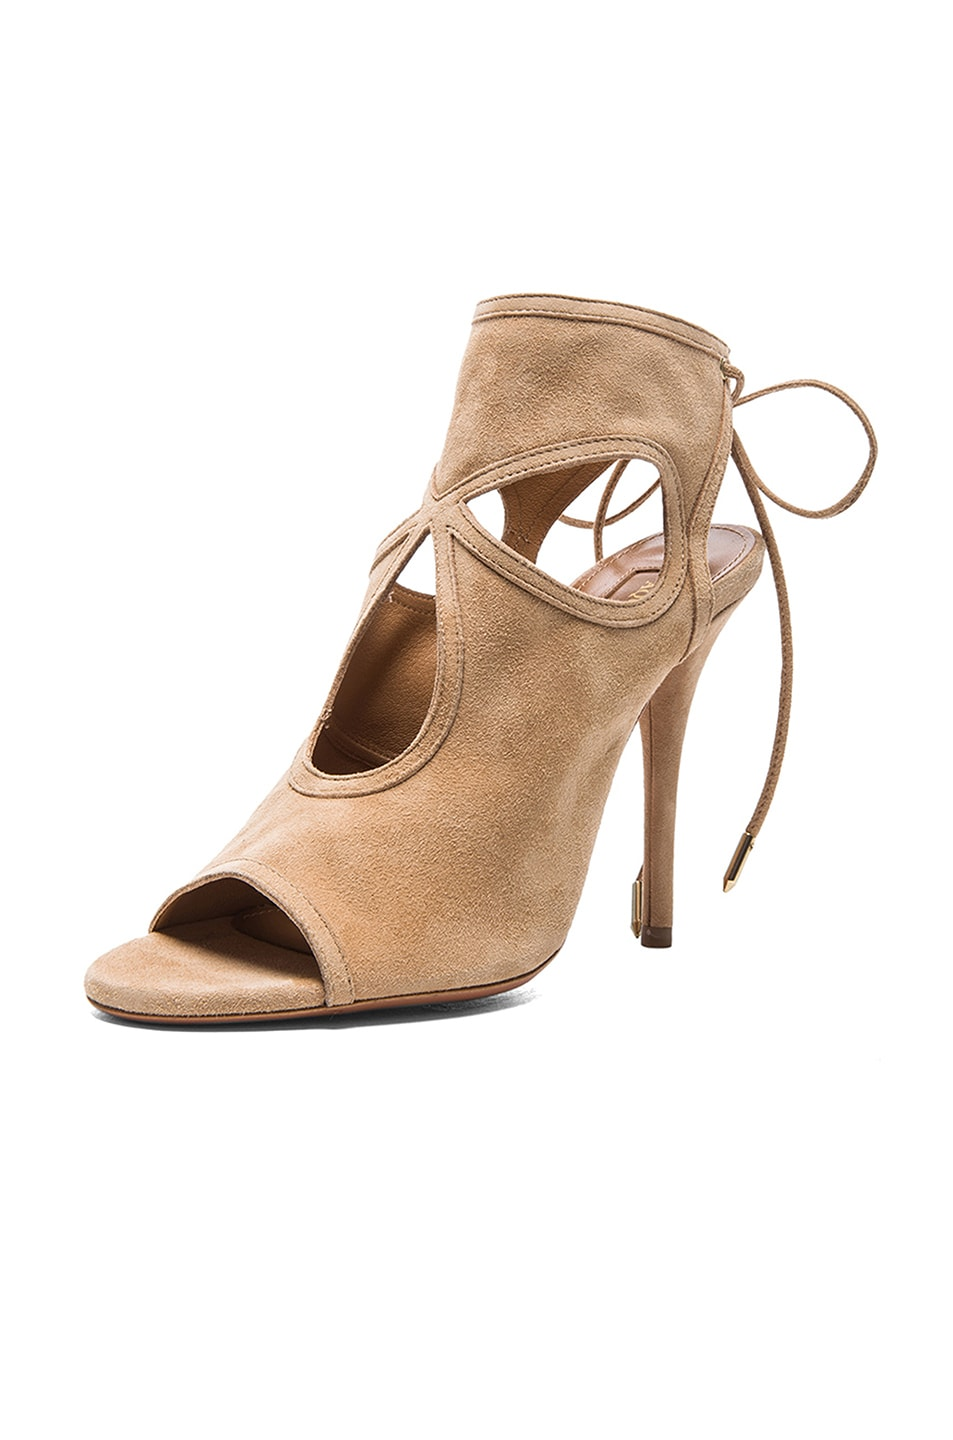 Image 2 of Aquazzura Sexy Thing Suede Sandals in Nude